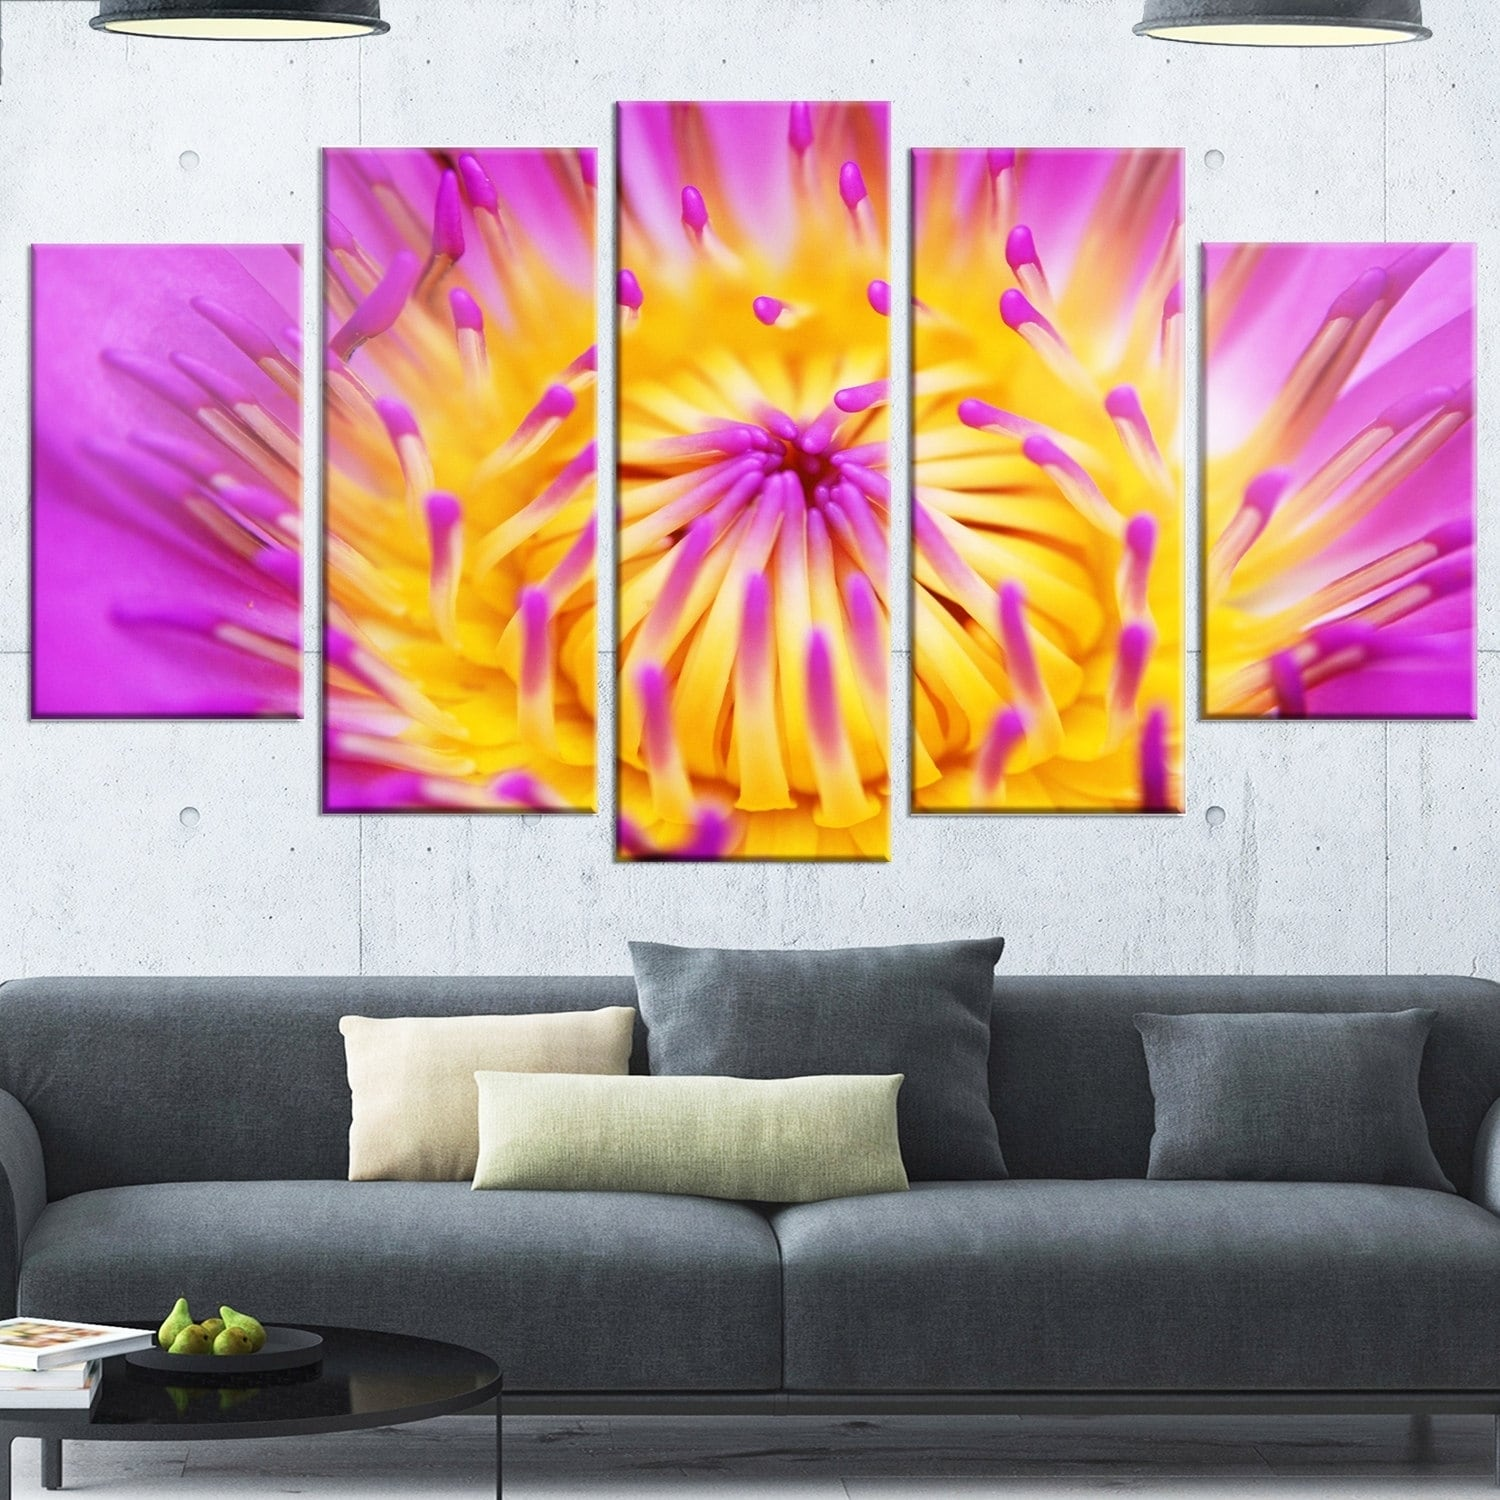 Charming Purple Metal Wall Art Contemporary - The Wall Art ...